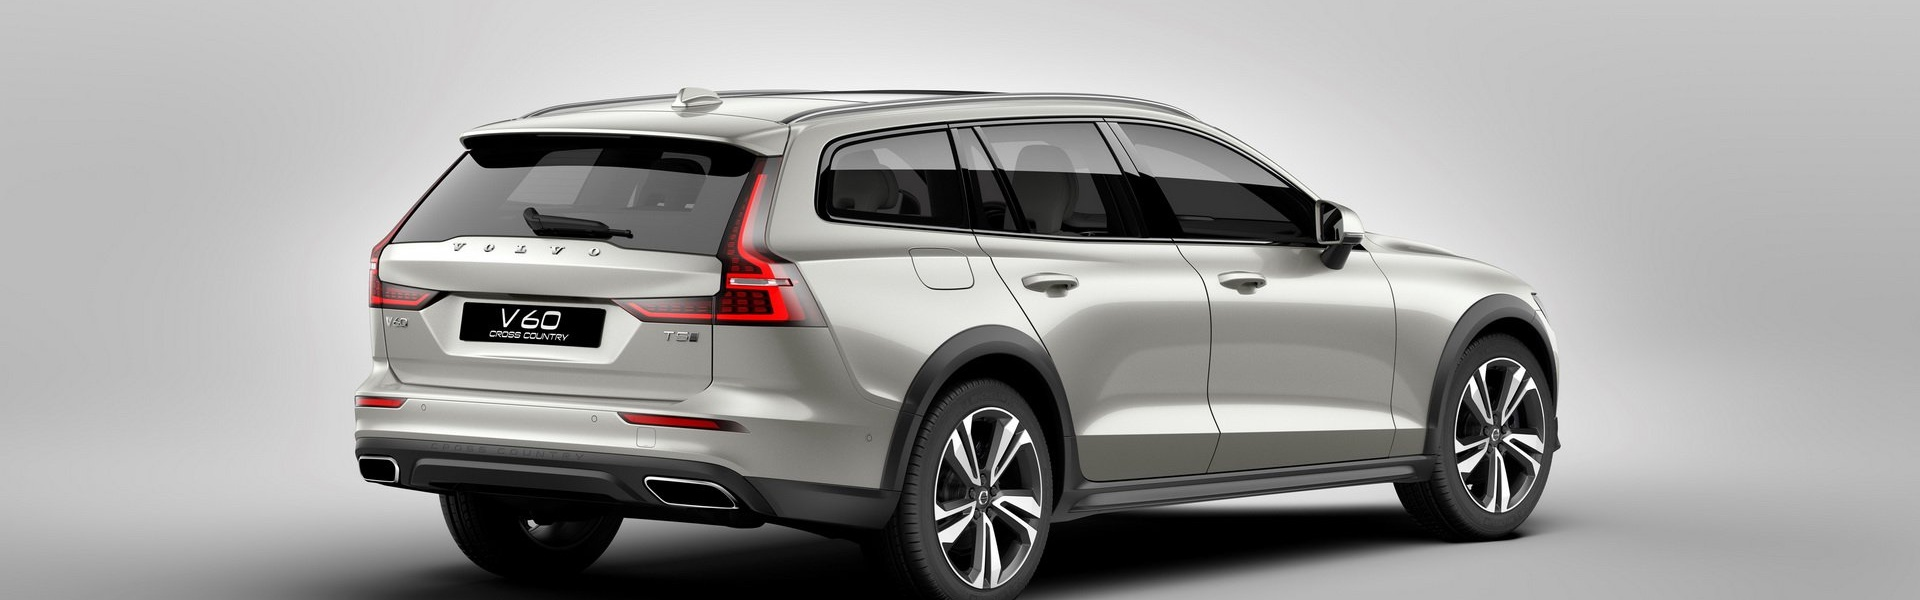 d7e1a42e-volvo-v60-cross-country-all-new-unveiled-20.jpg